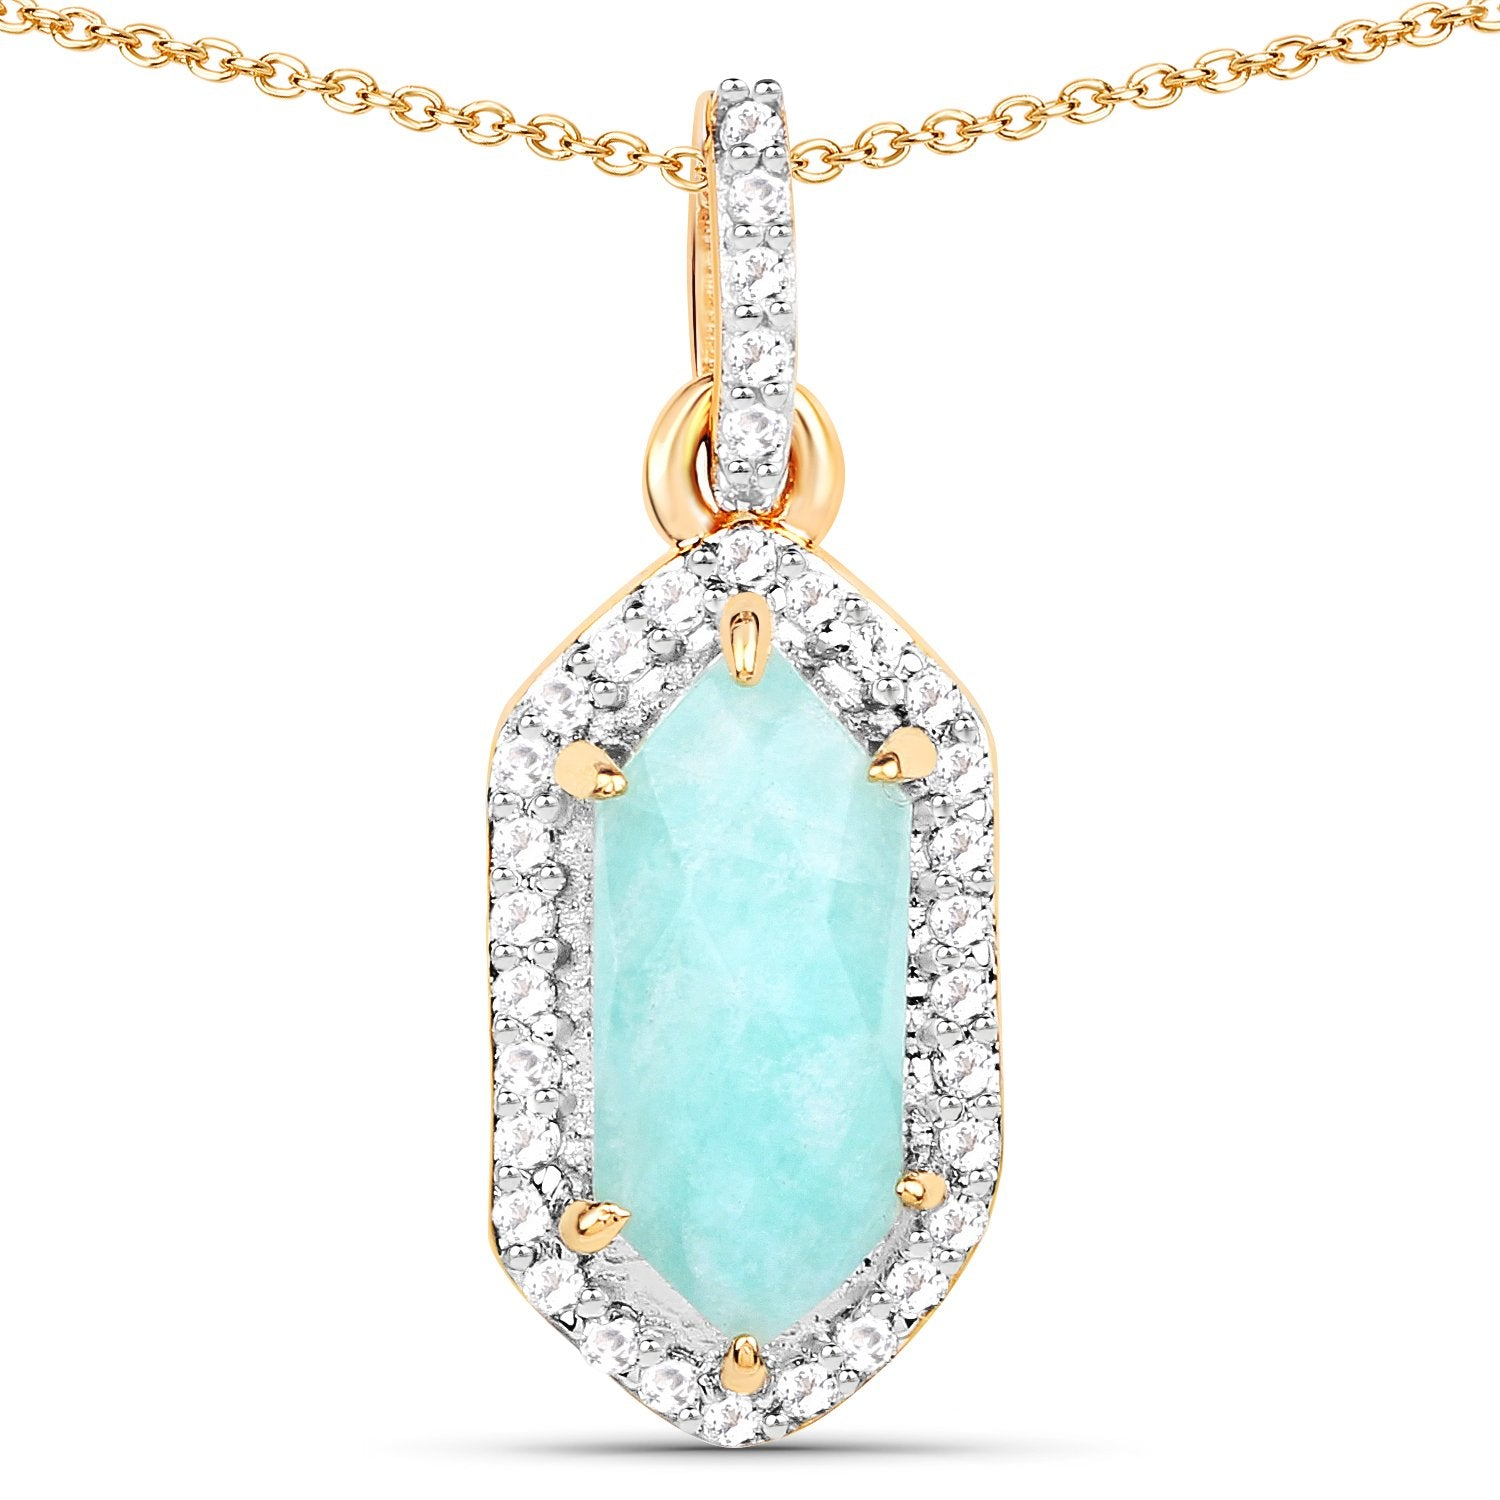 LoveHuang 1.95 Carats Genuine Amazonite and White Topaz Drop Pendant Solid .925 Sterling Silver With 18KT Yellow Gold Plating, 18Inch Chain